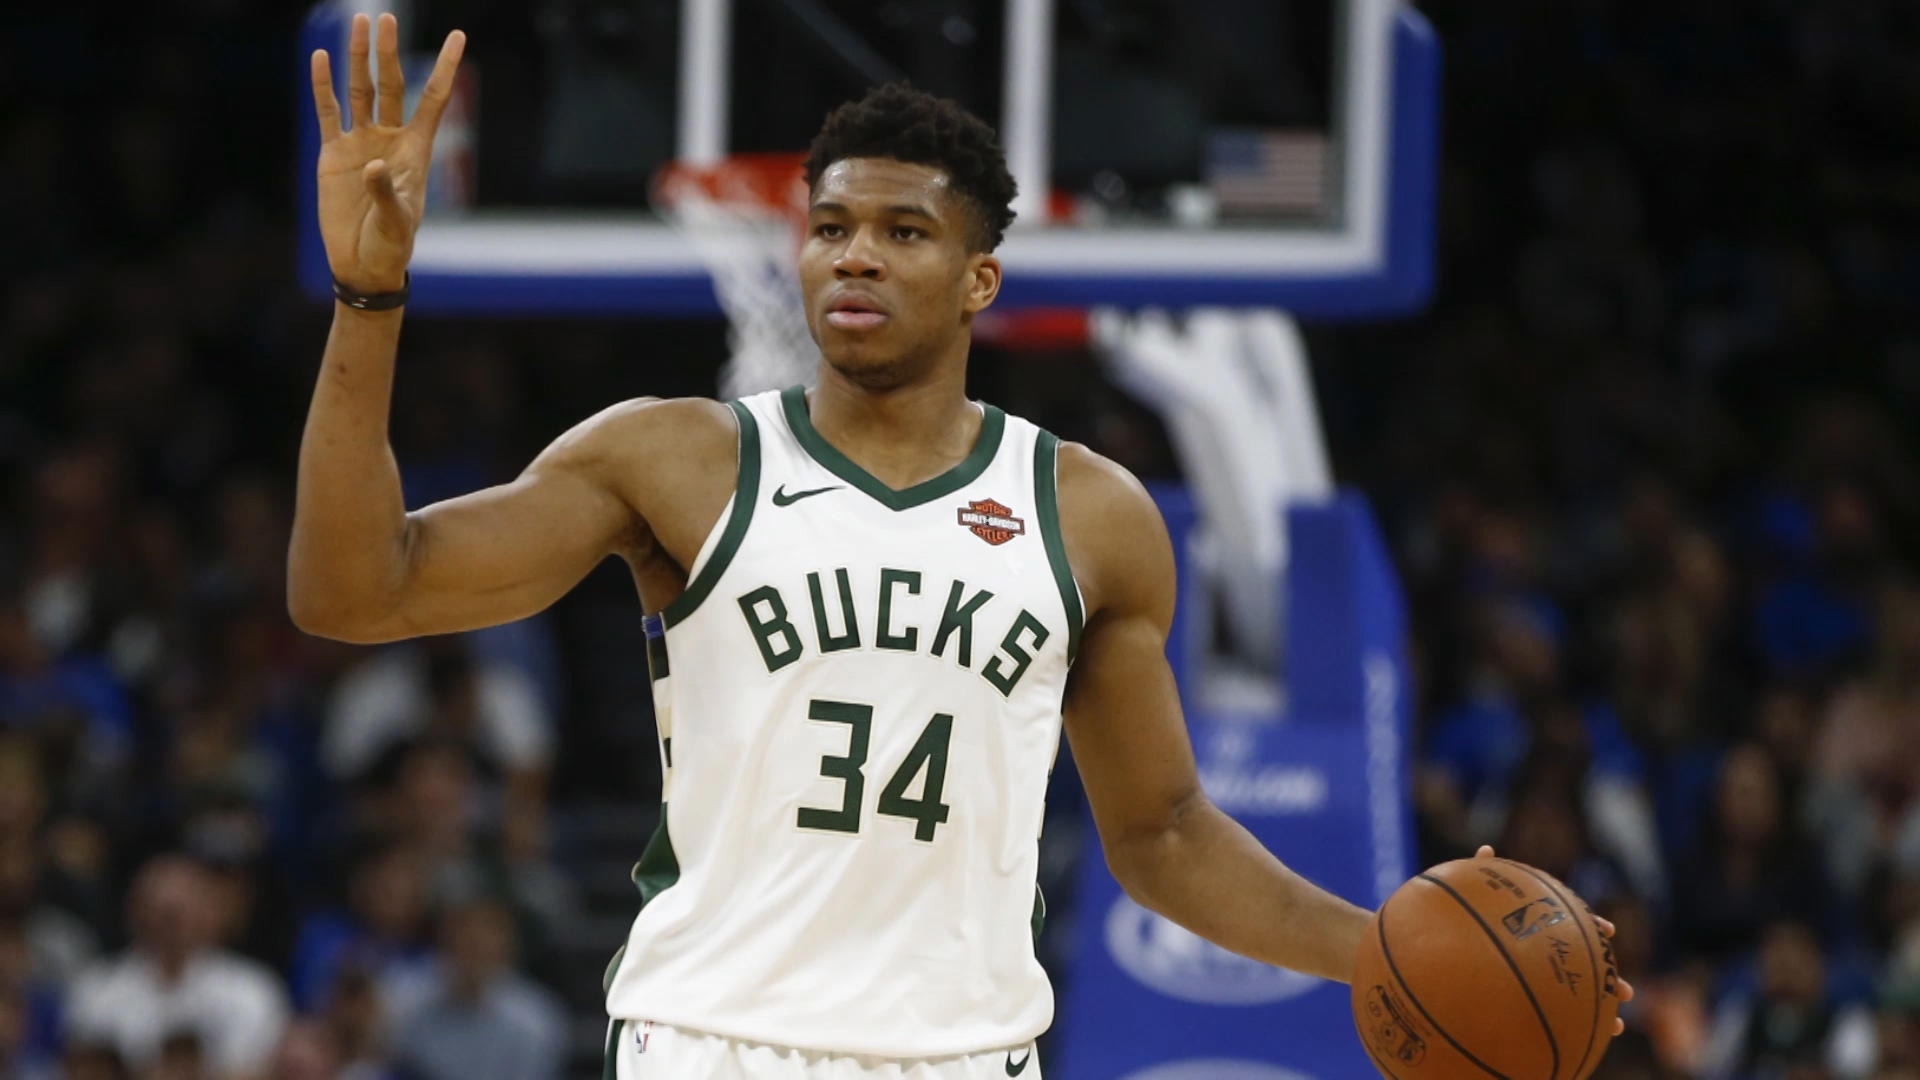 Fantasy Basketball: Week 19 Waiver Wire